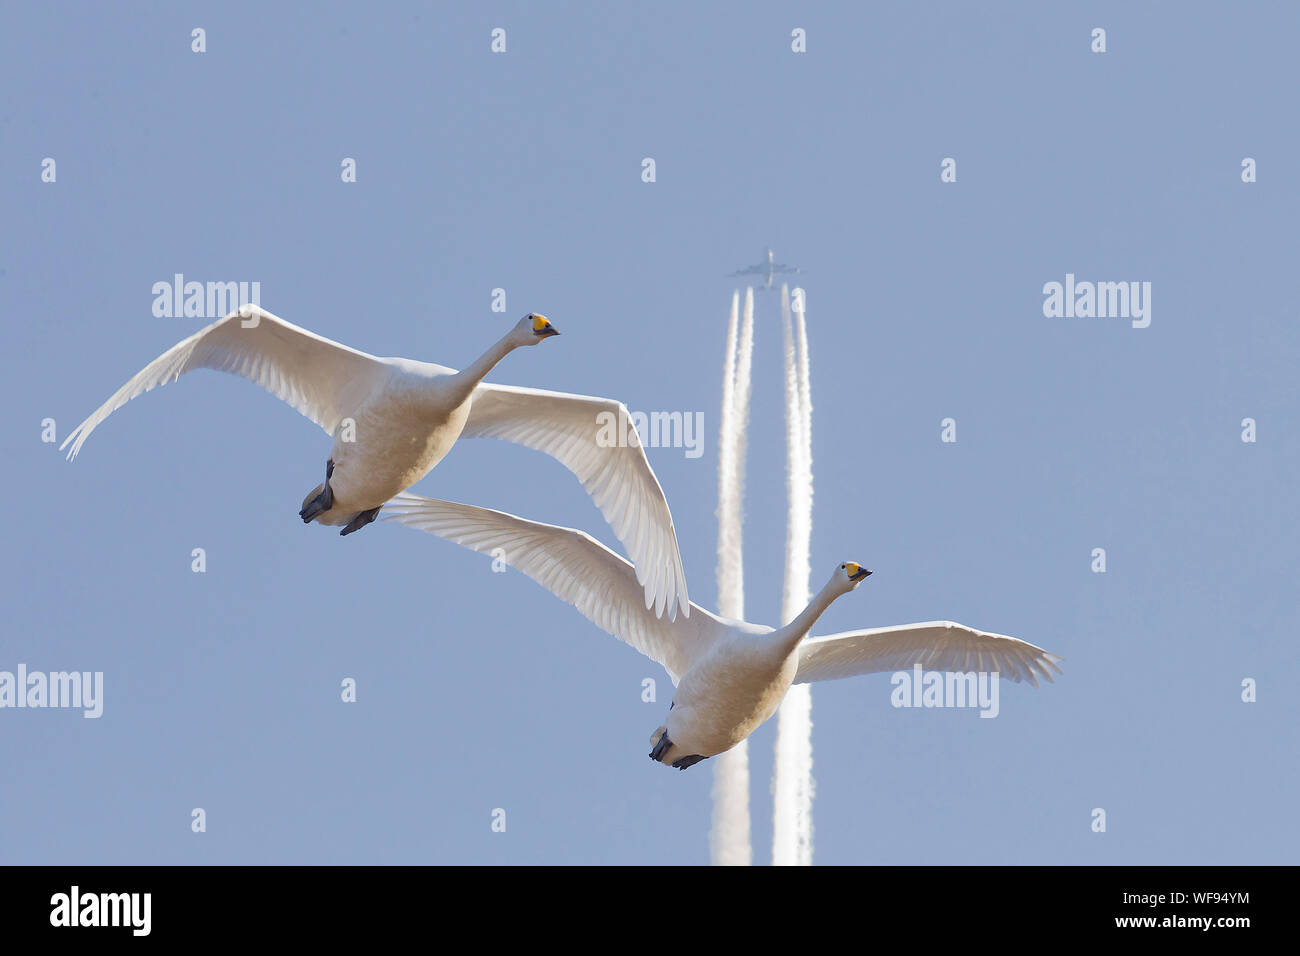 Low Angle View Of Two Swans Flying Against Distant Airplane Stock Photo